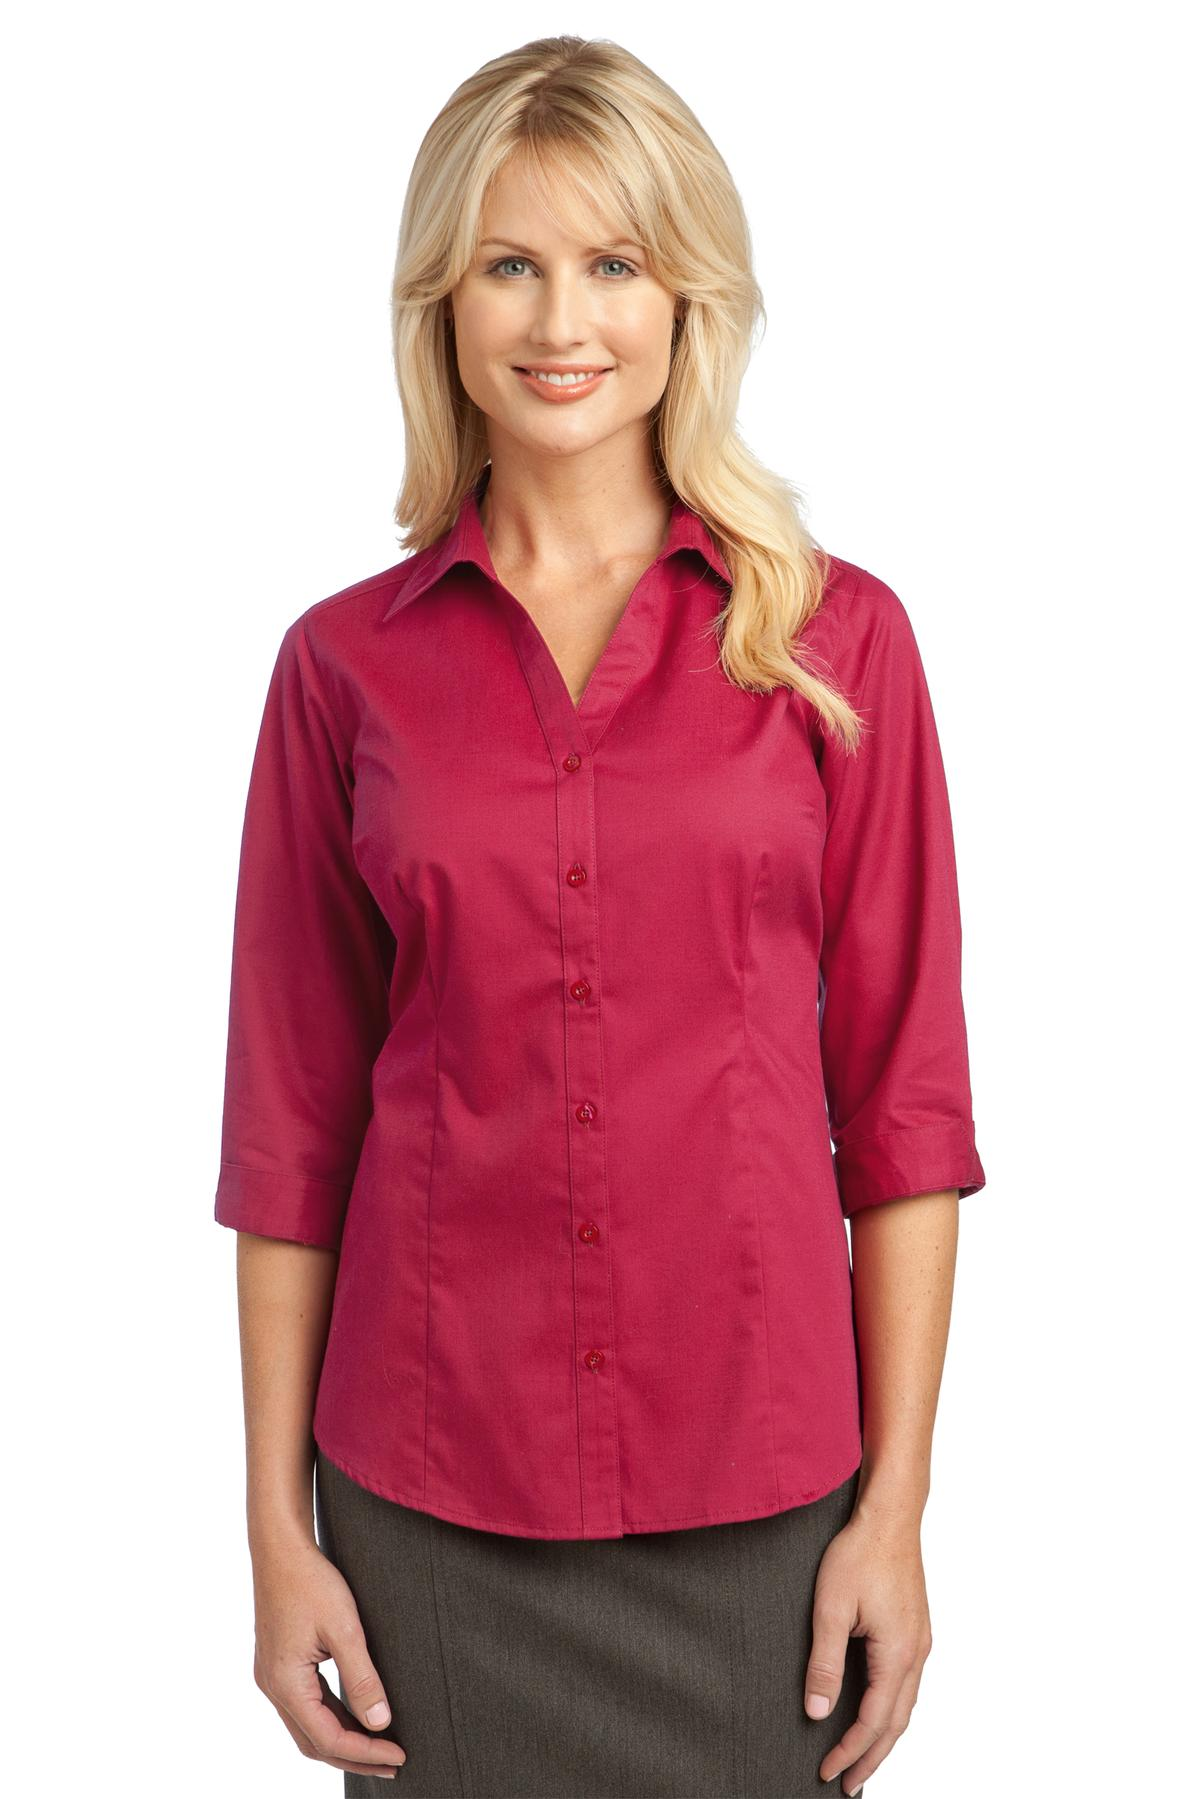 IMPROVED  Port Authority ®  Ladies 3/4-Sleeve Blouse. L6290 - Raspberry Pink